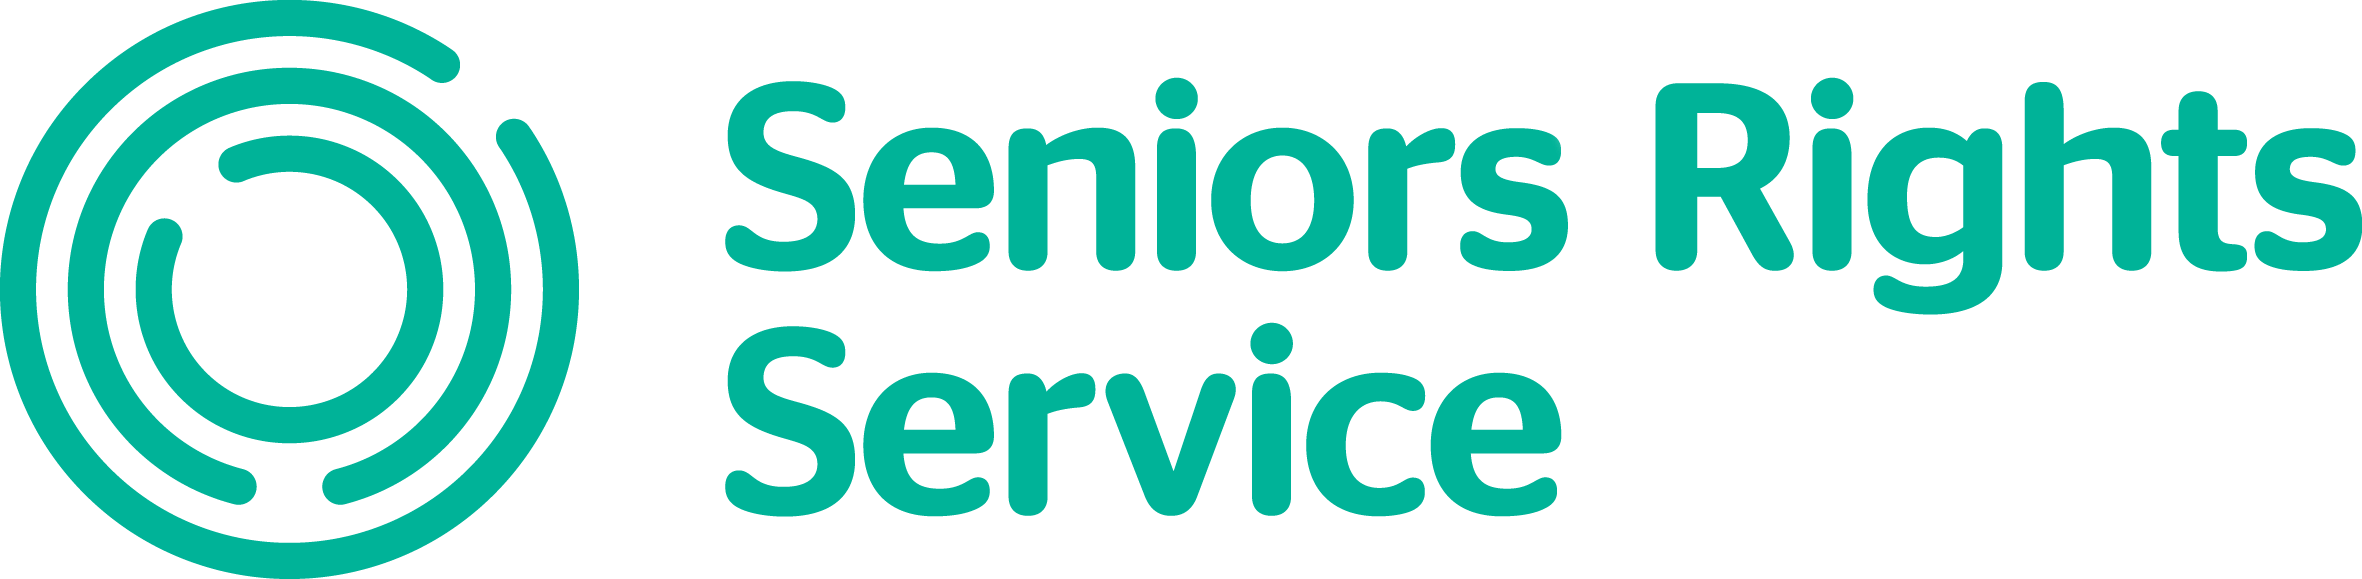 Seniors Rights Service Stacked Logo Rgb 600dpi